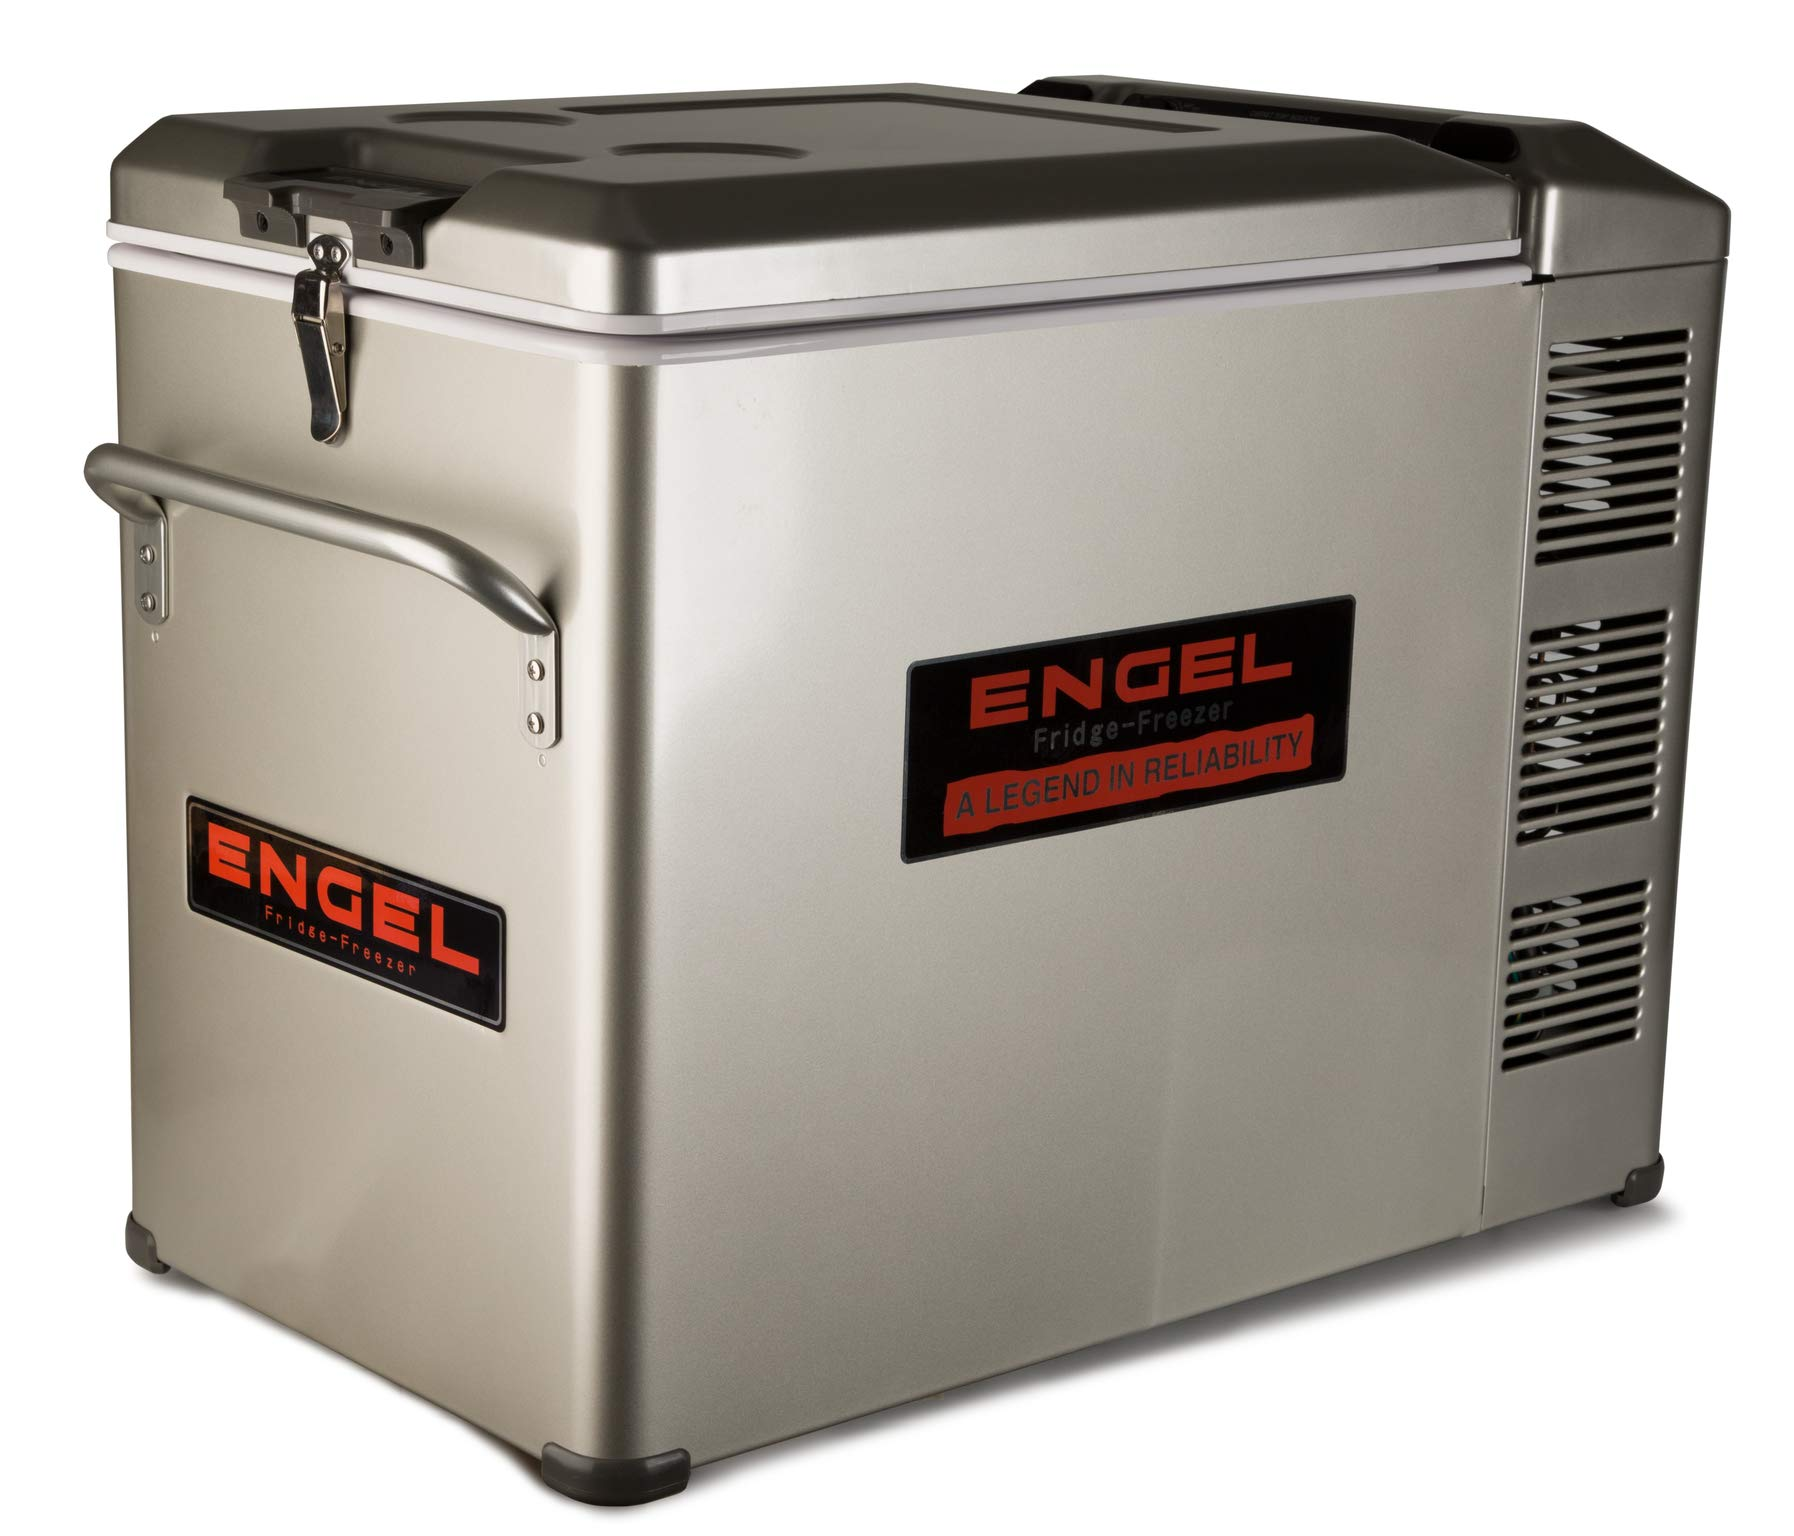 New Engel MT45 Platinum 12v/110v Fridge Freezer 1 Supplied with both AC and DC cords. Built-in battery monitor. 50th Anniversary Edition of the Engel MT45.